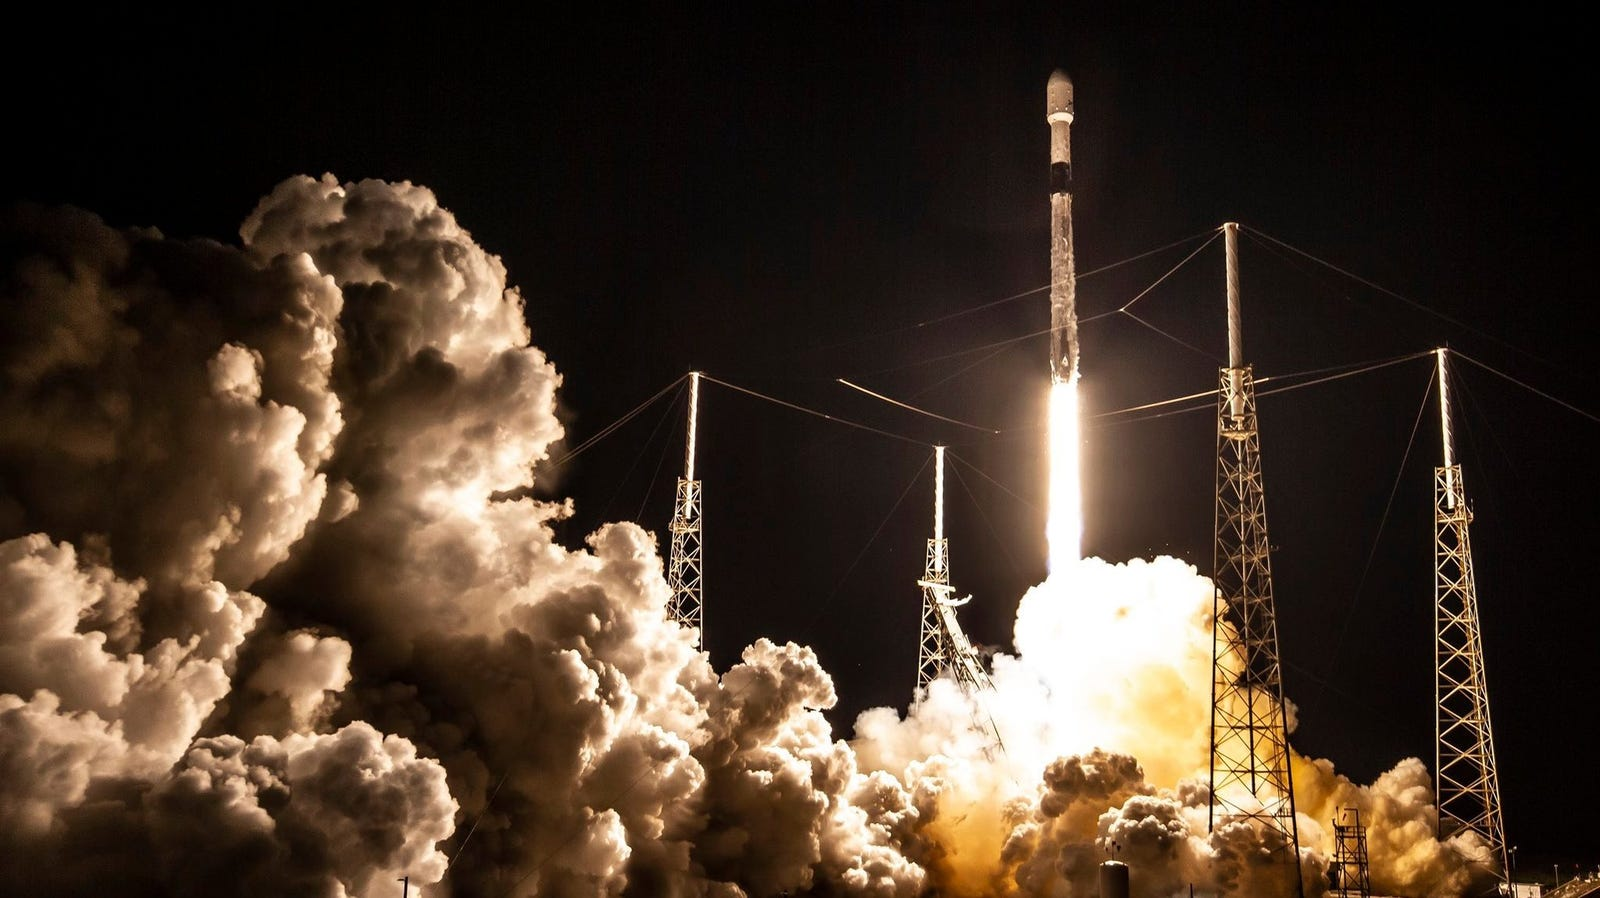 Latest Starlink Launch Makes SpaceX the Largest Commercial Satellite Operator in the World